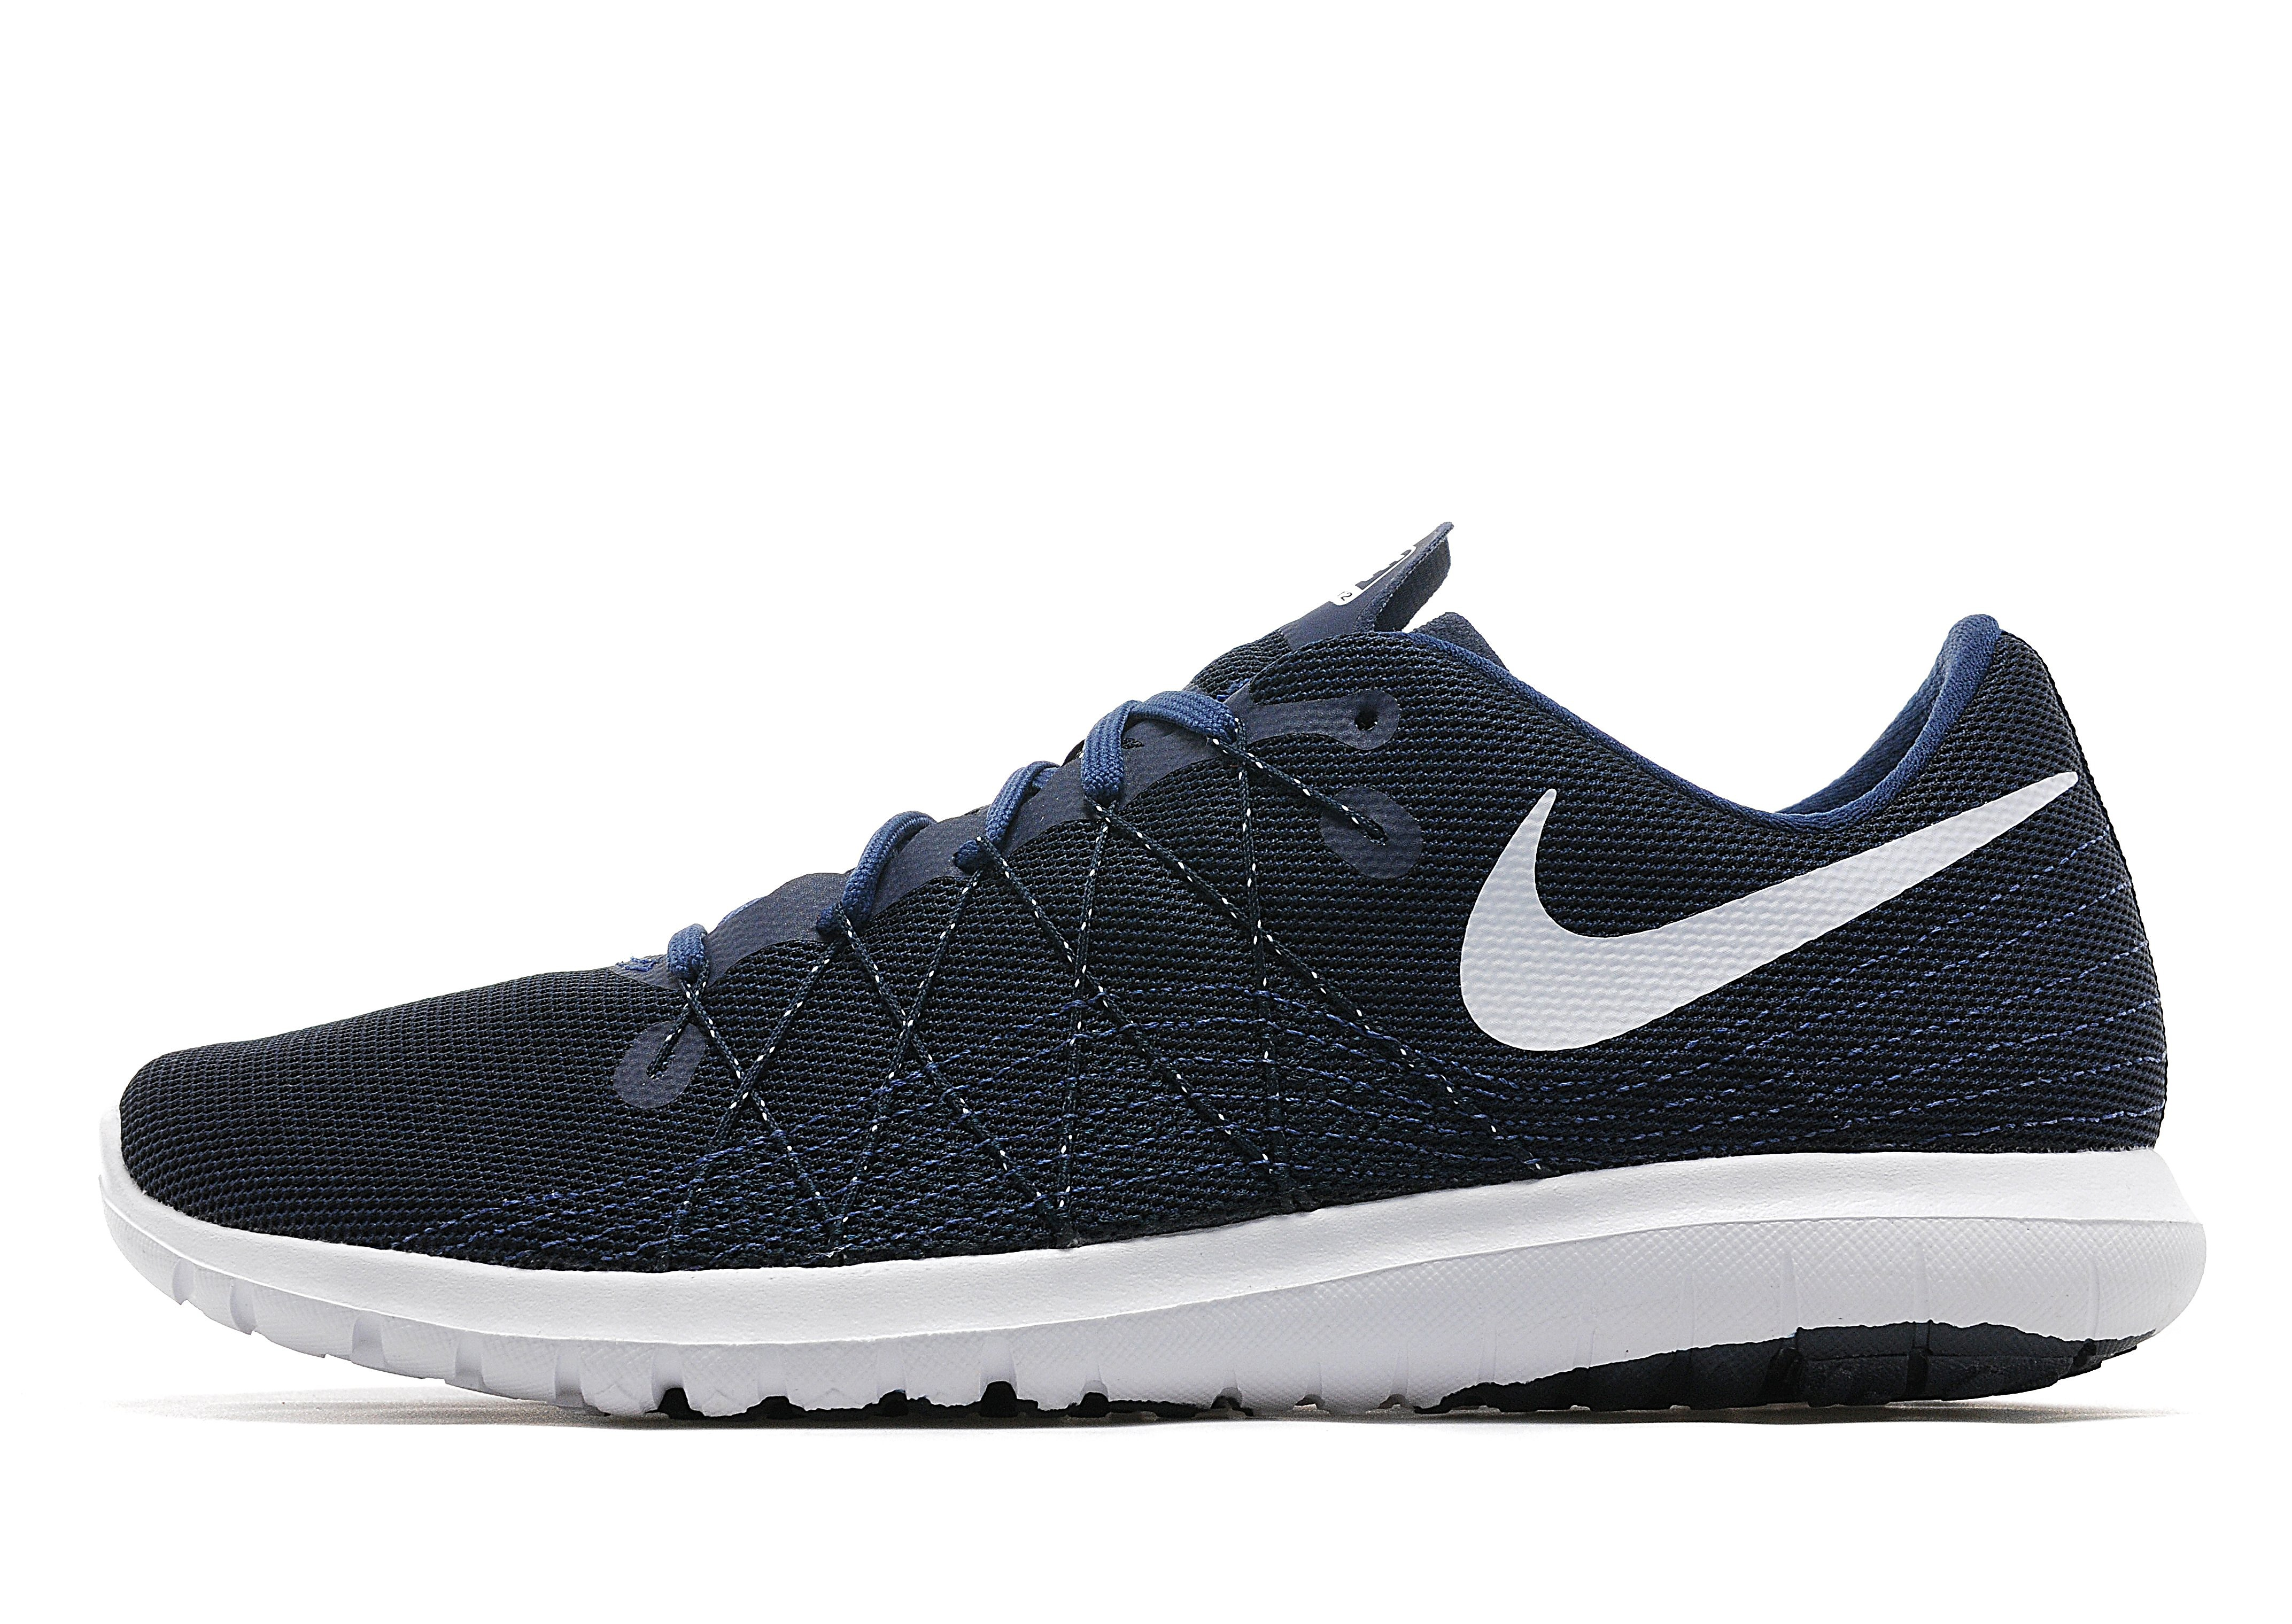 preview of run shoes save off Nike Flex Fury 2 - Navy/White - Mens - Sports King Store